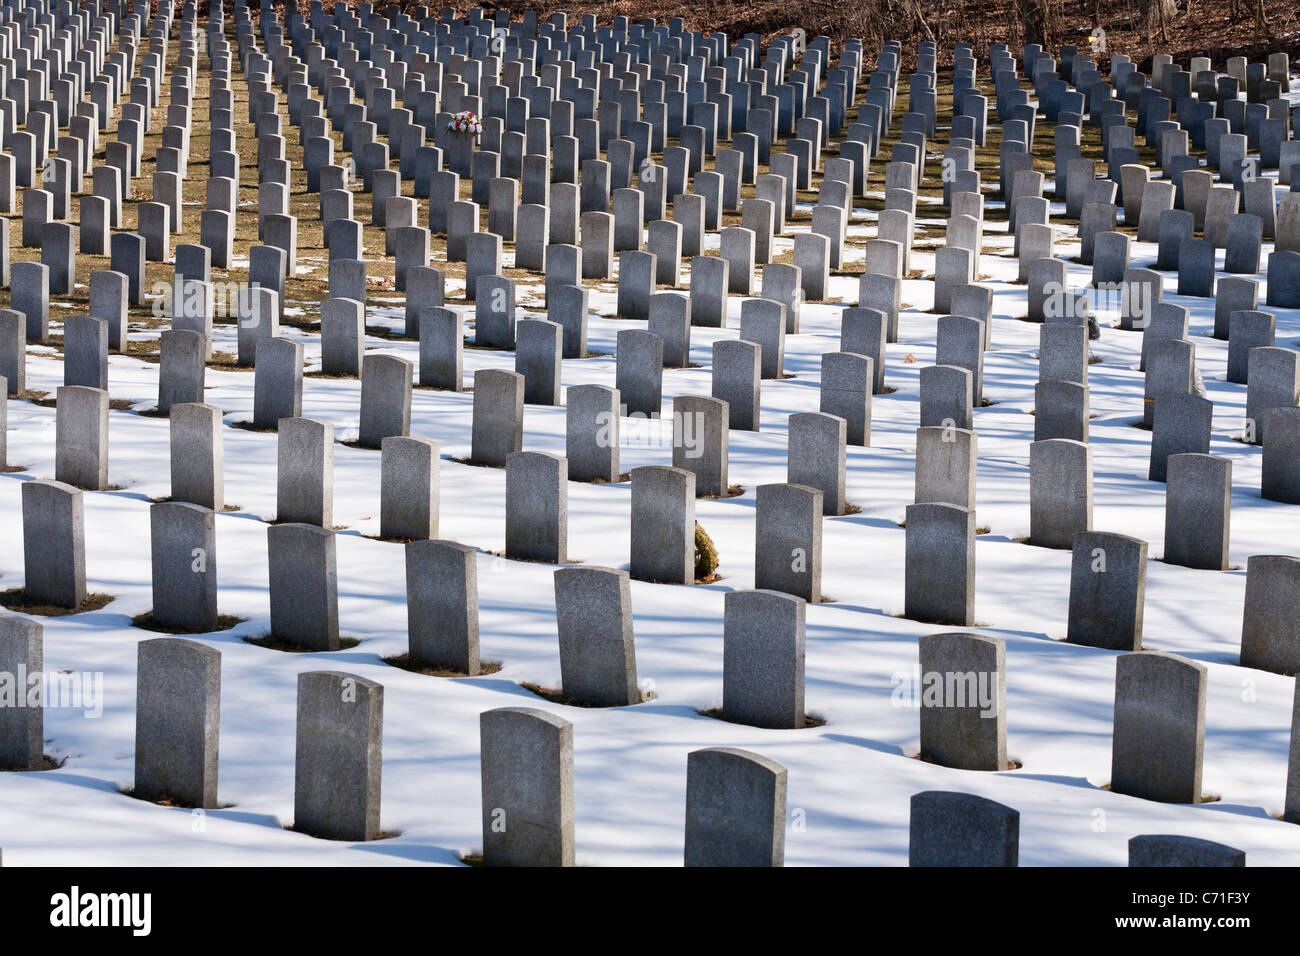 Row on Row. In Bayview Cemetery's military section grey granite headstones mark the graves of Canada's war dead. Stock Photo